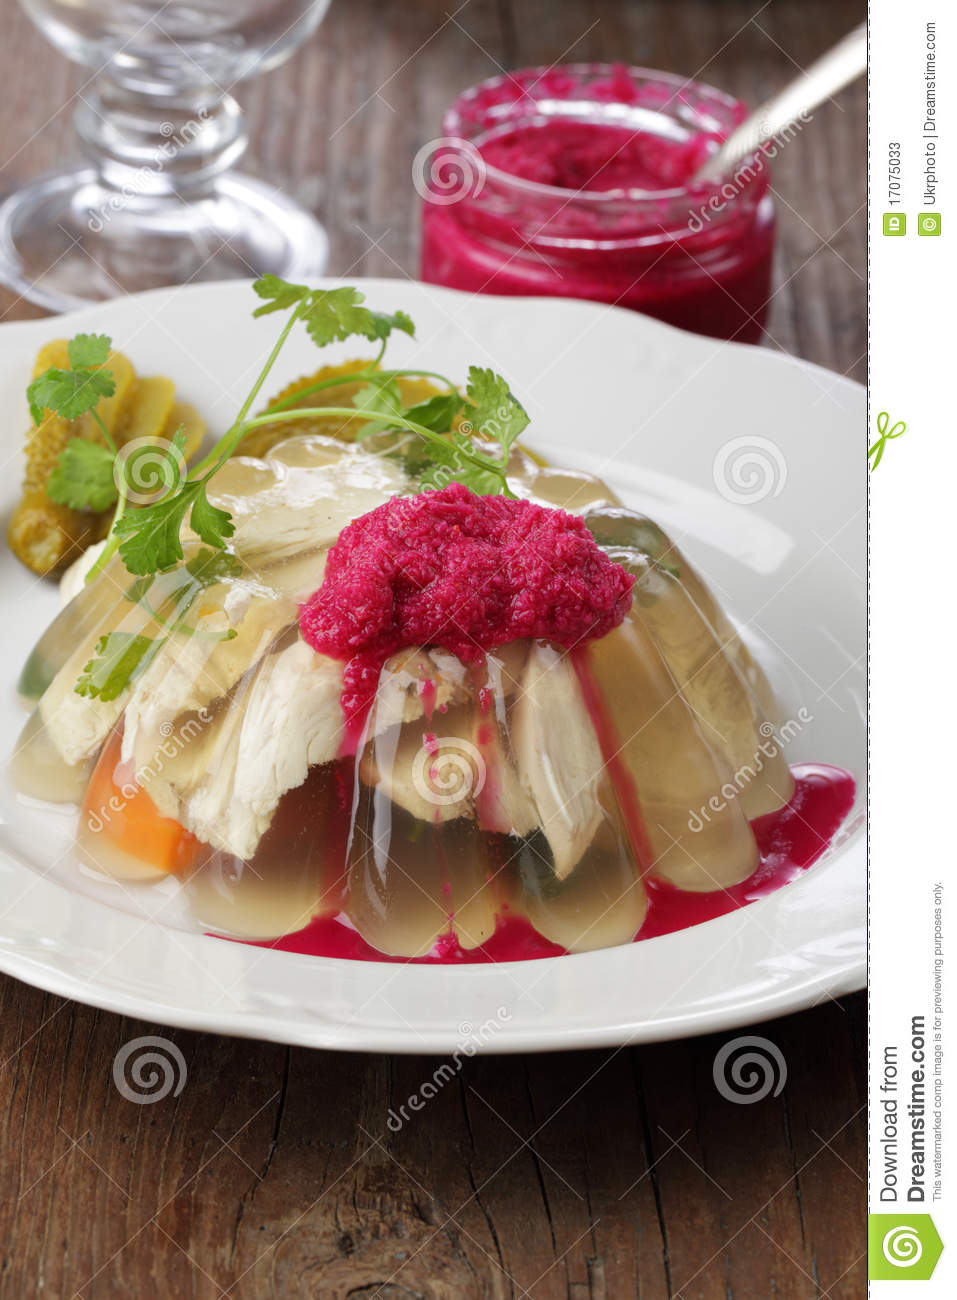 Download Aspic stock image. Image of dinner, jelly, fork, meat - 17075033